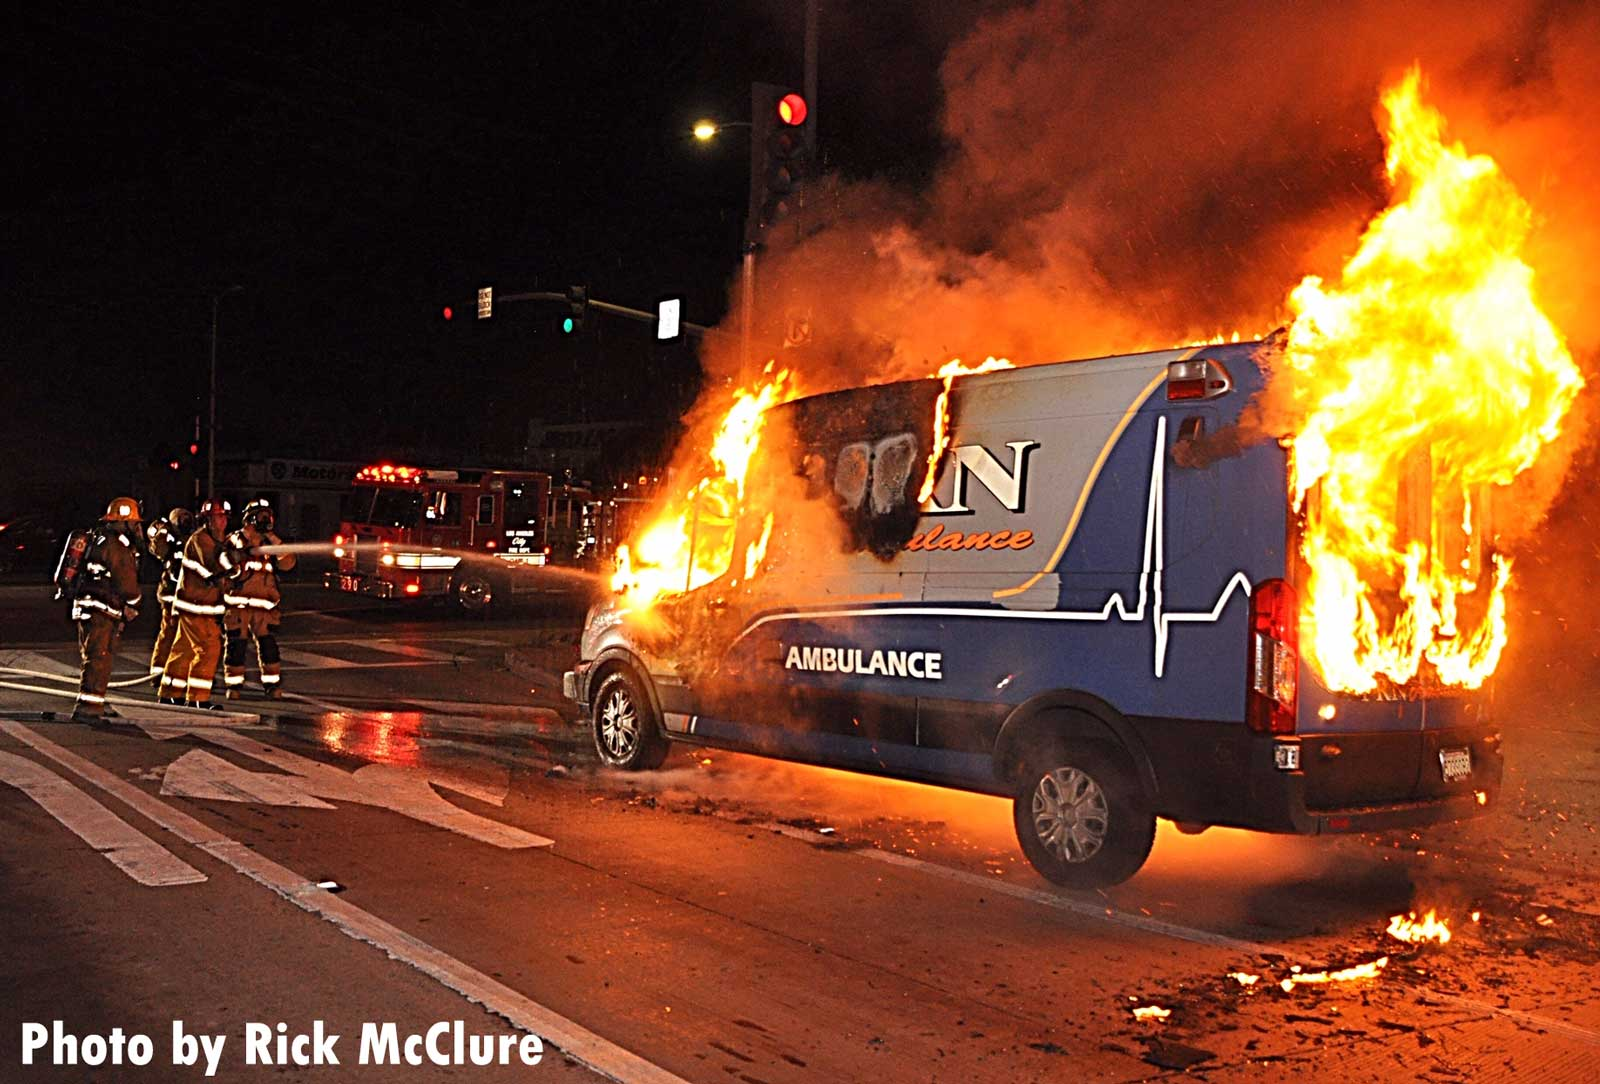 Firefighters get water on the ambulance fire